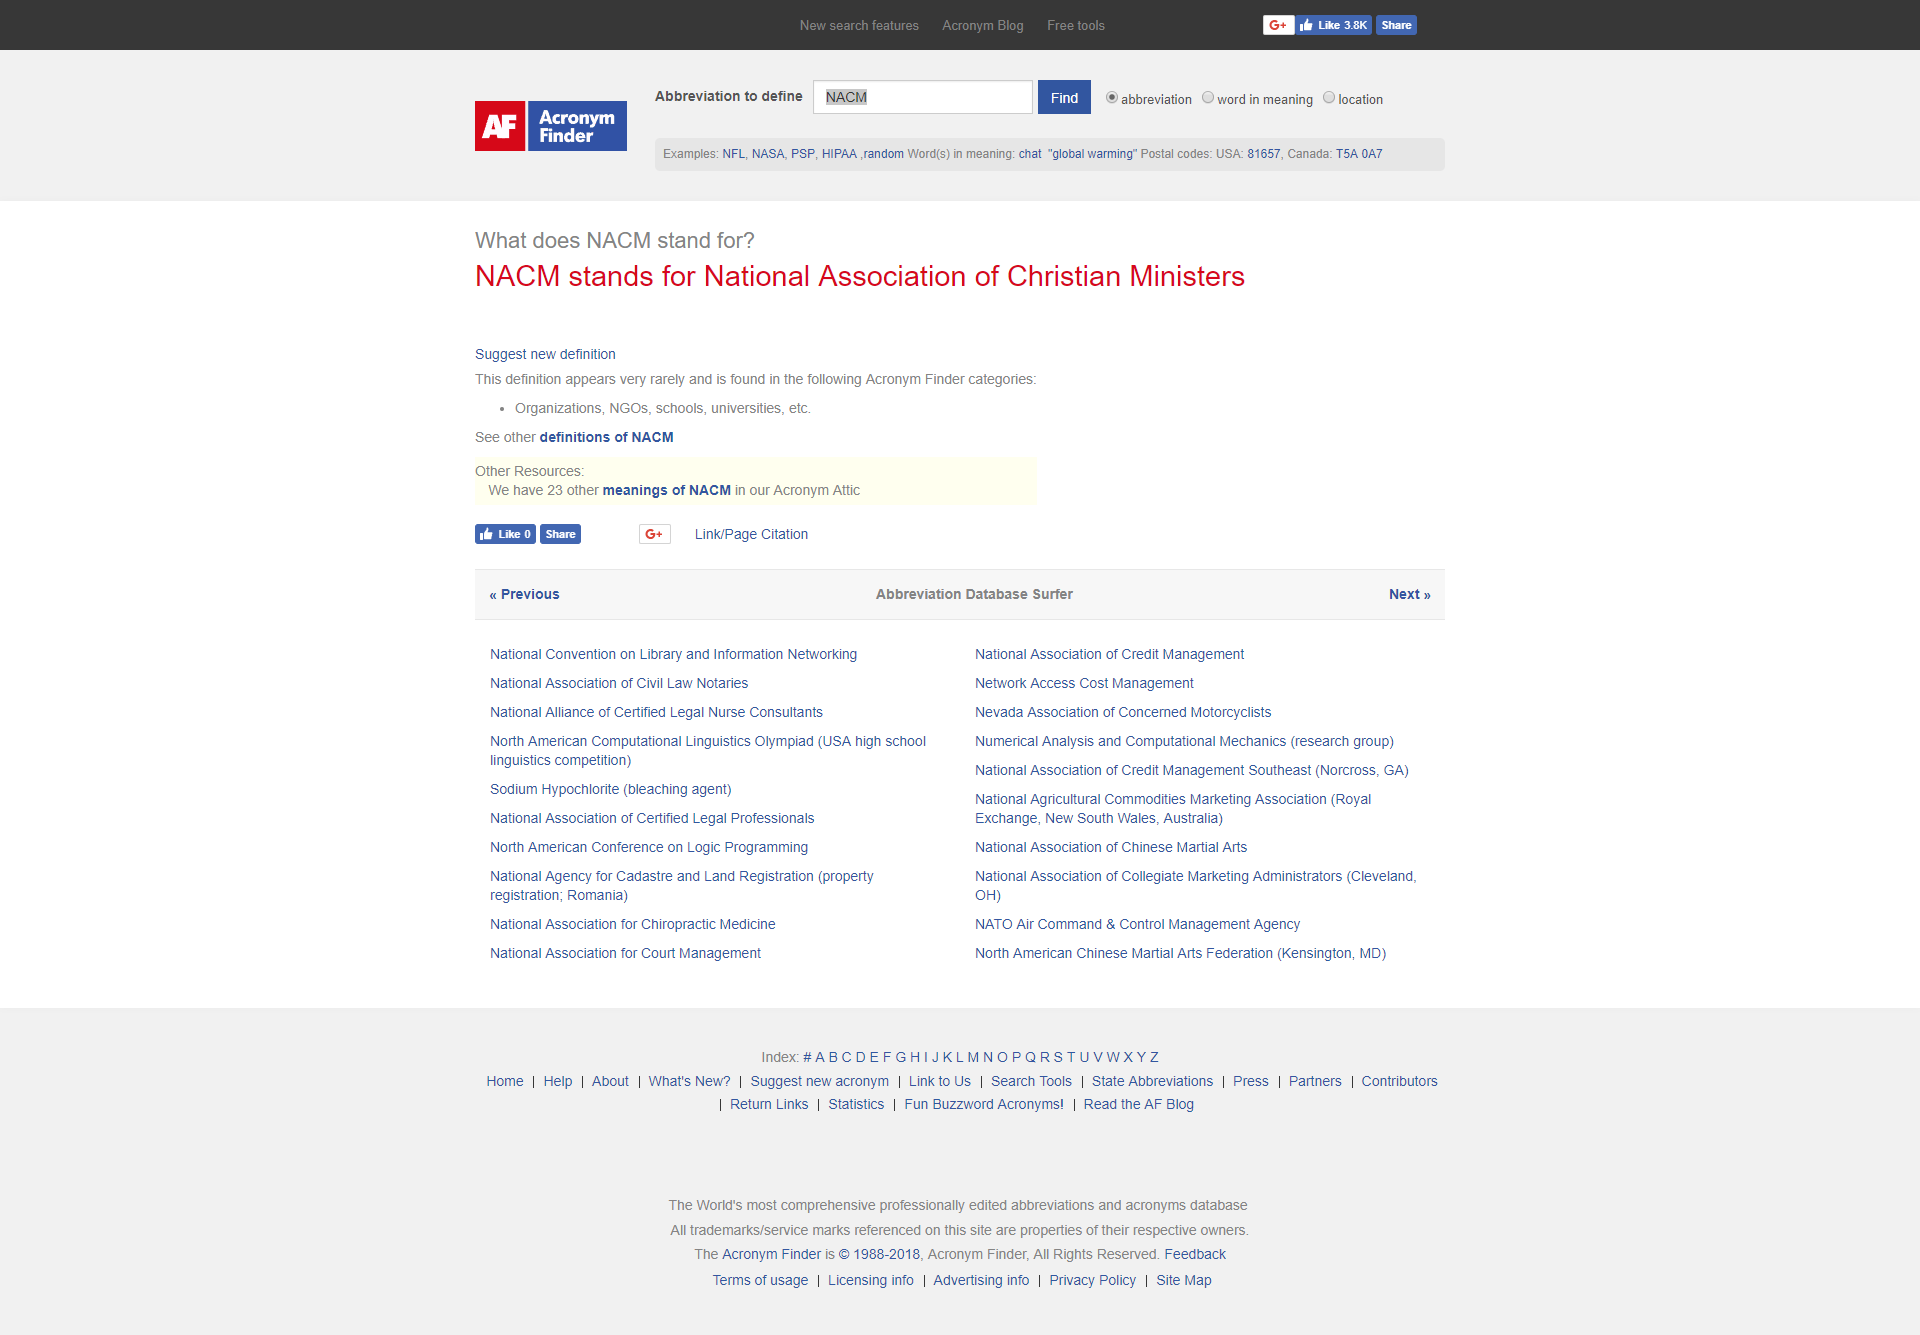 Acronym Finder Lists NACM as Standing for National Association of Christian Ministers